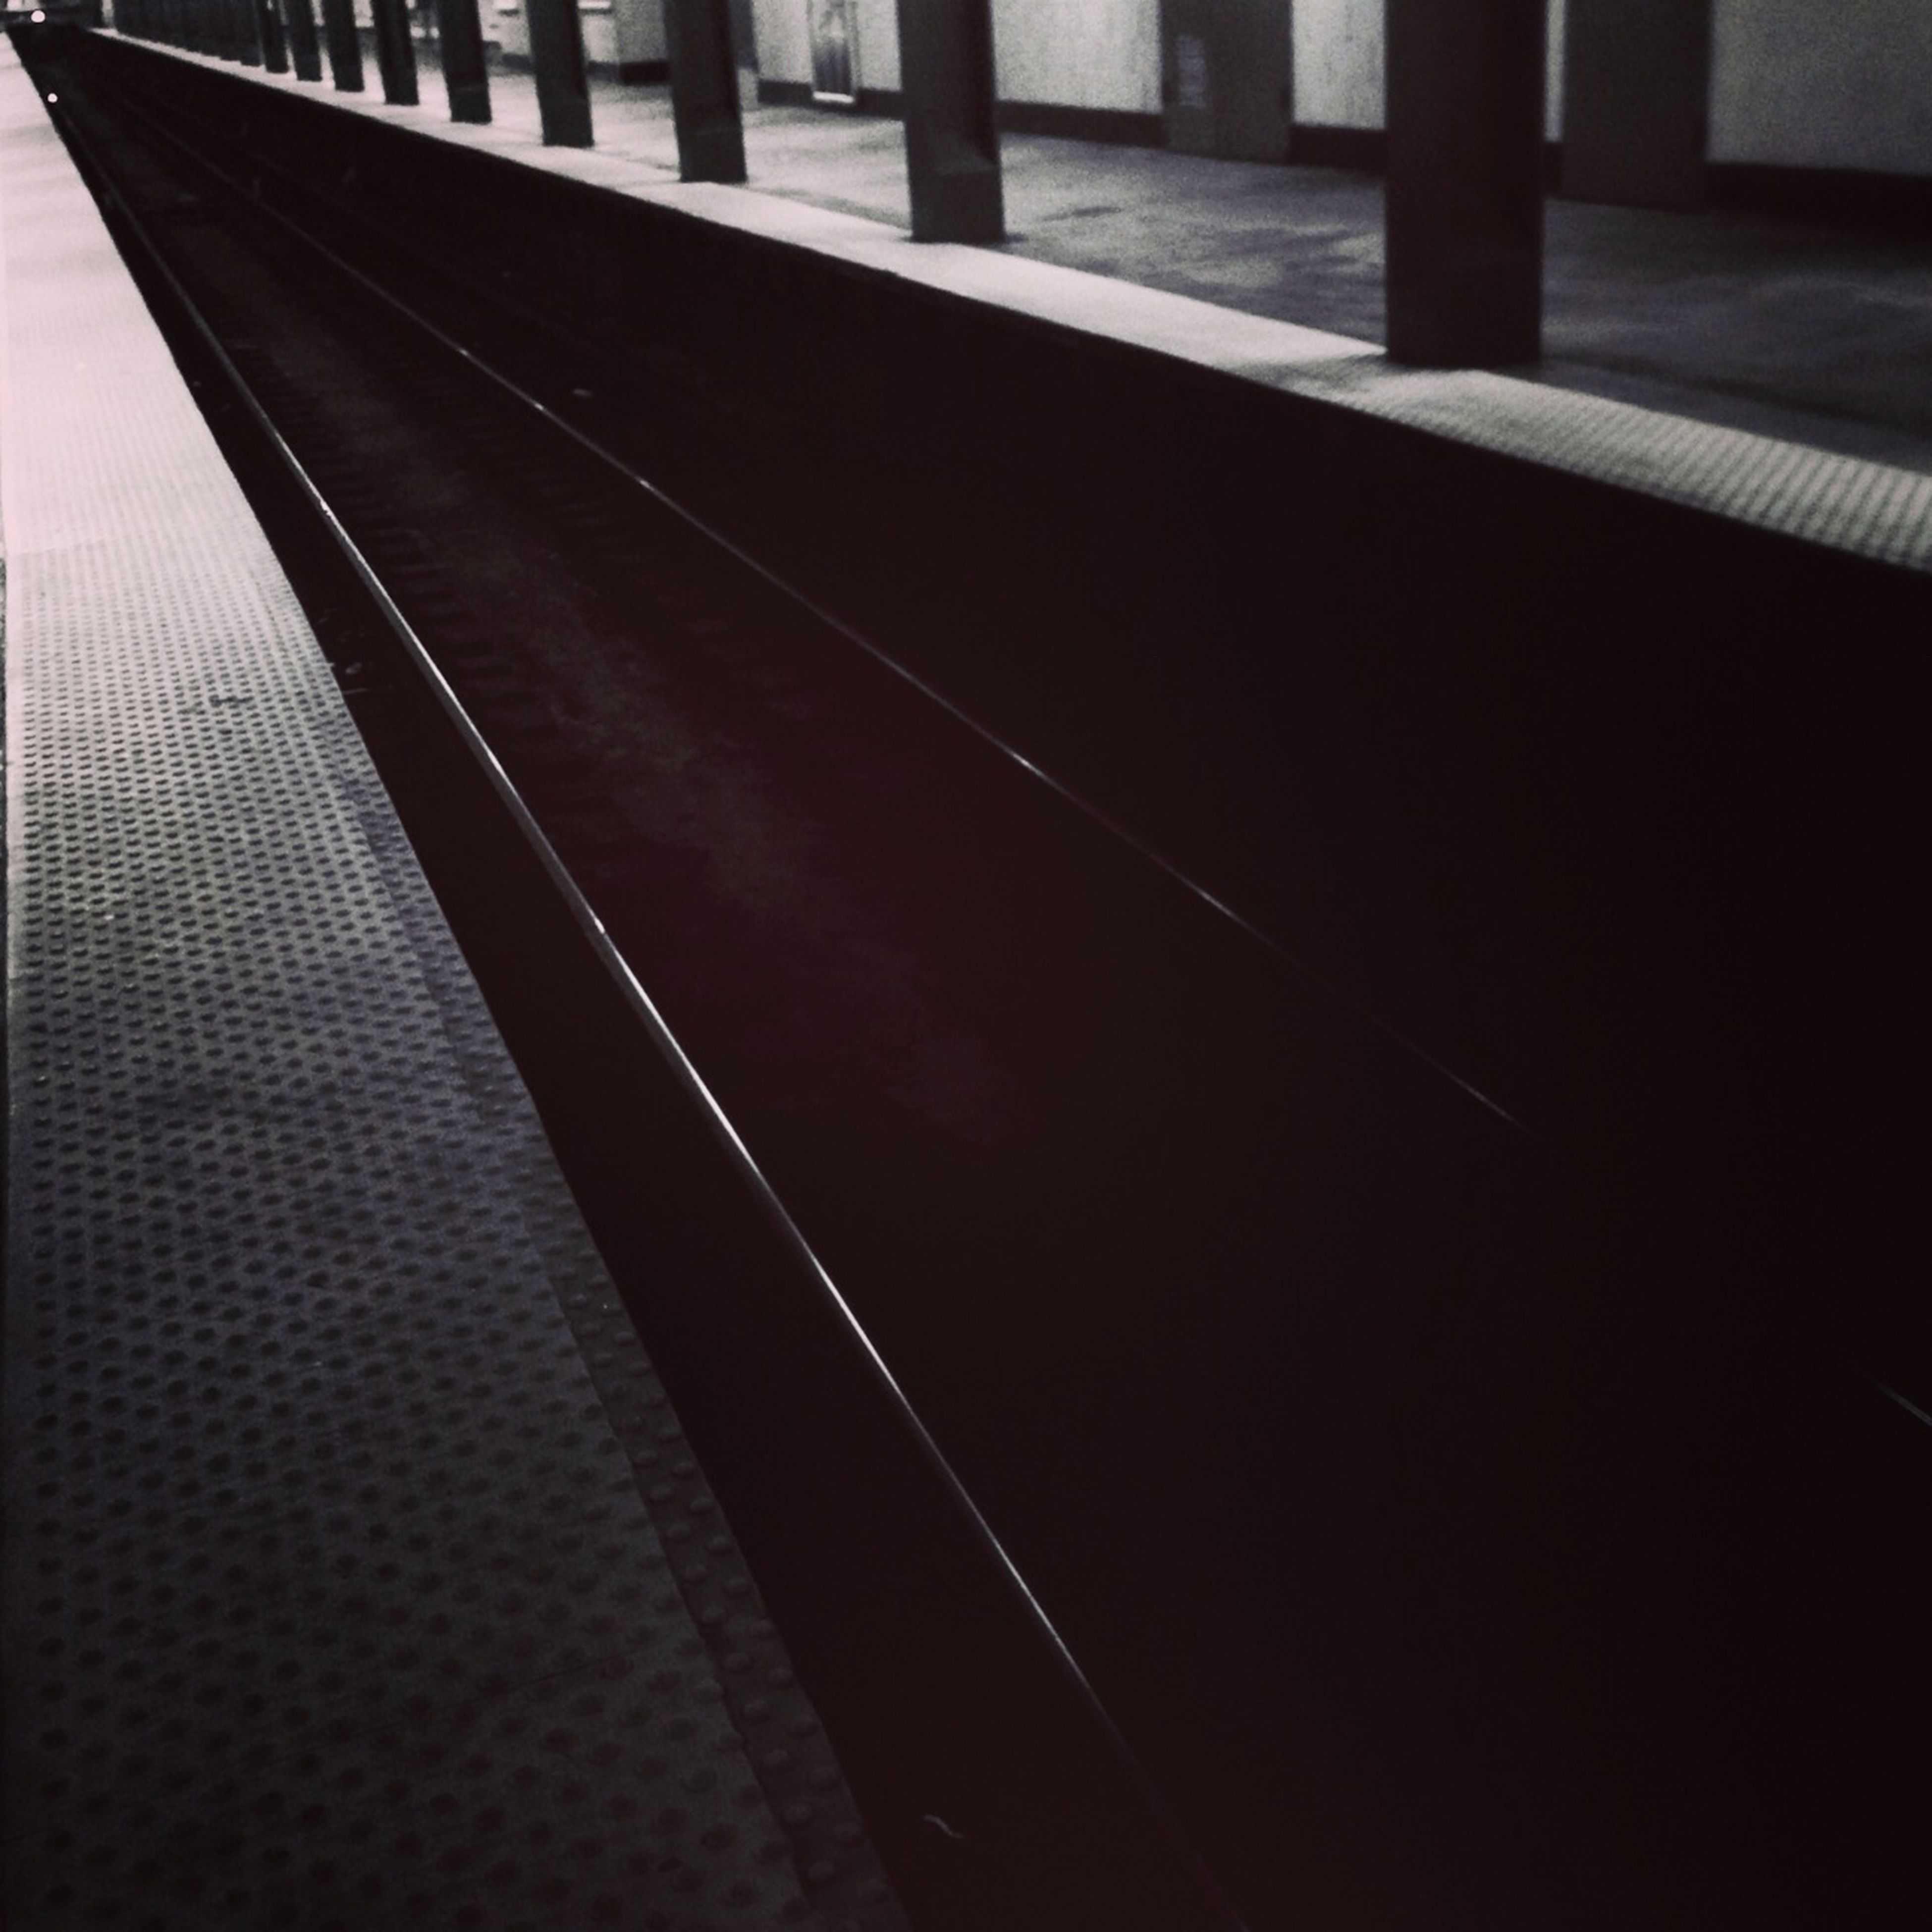 built structure, architecture, railing, transportation, building exterior, no people, metal, city, bridge - man made structure, sunlight, shadow, outdoors, day, pattern, connection, architectural column, reflection, water, empty, metallic